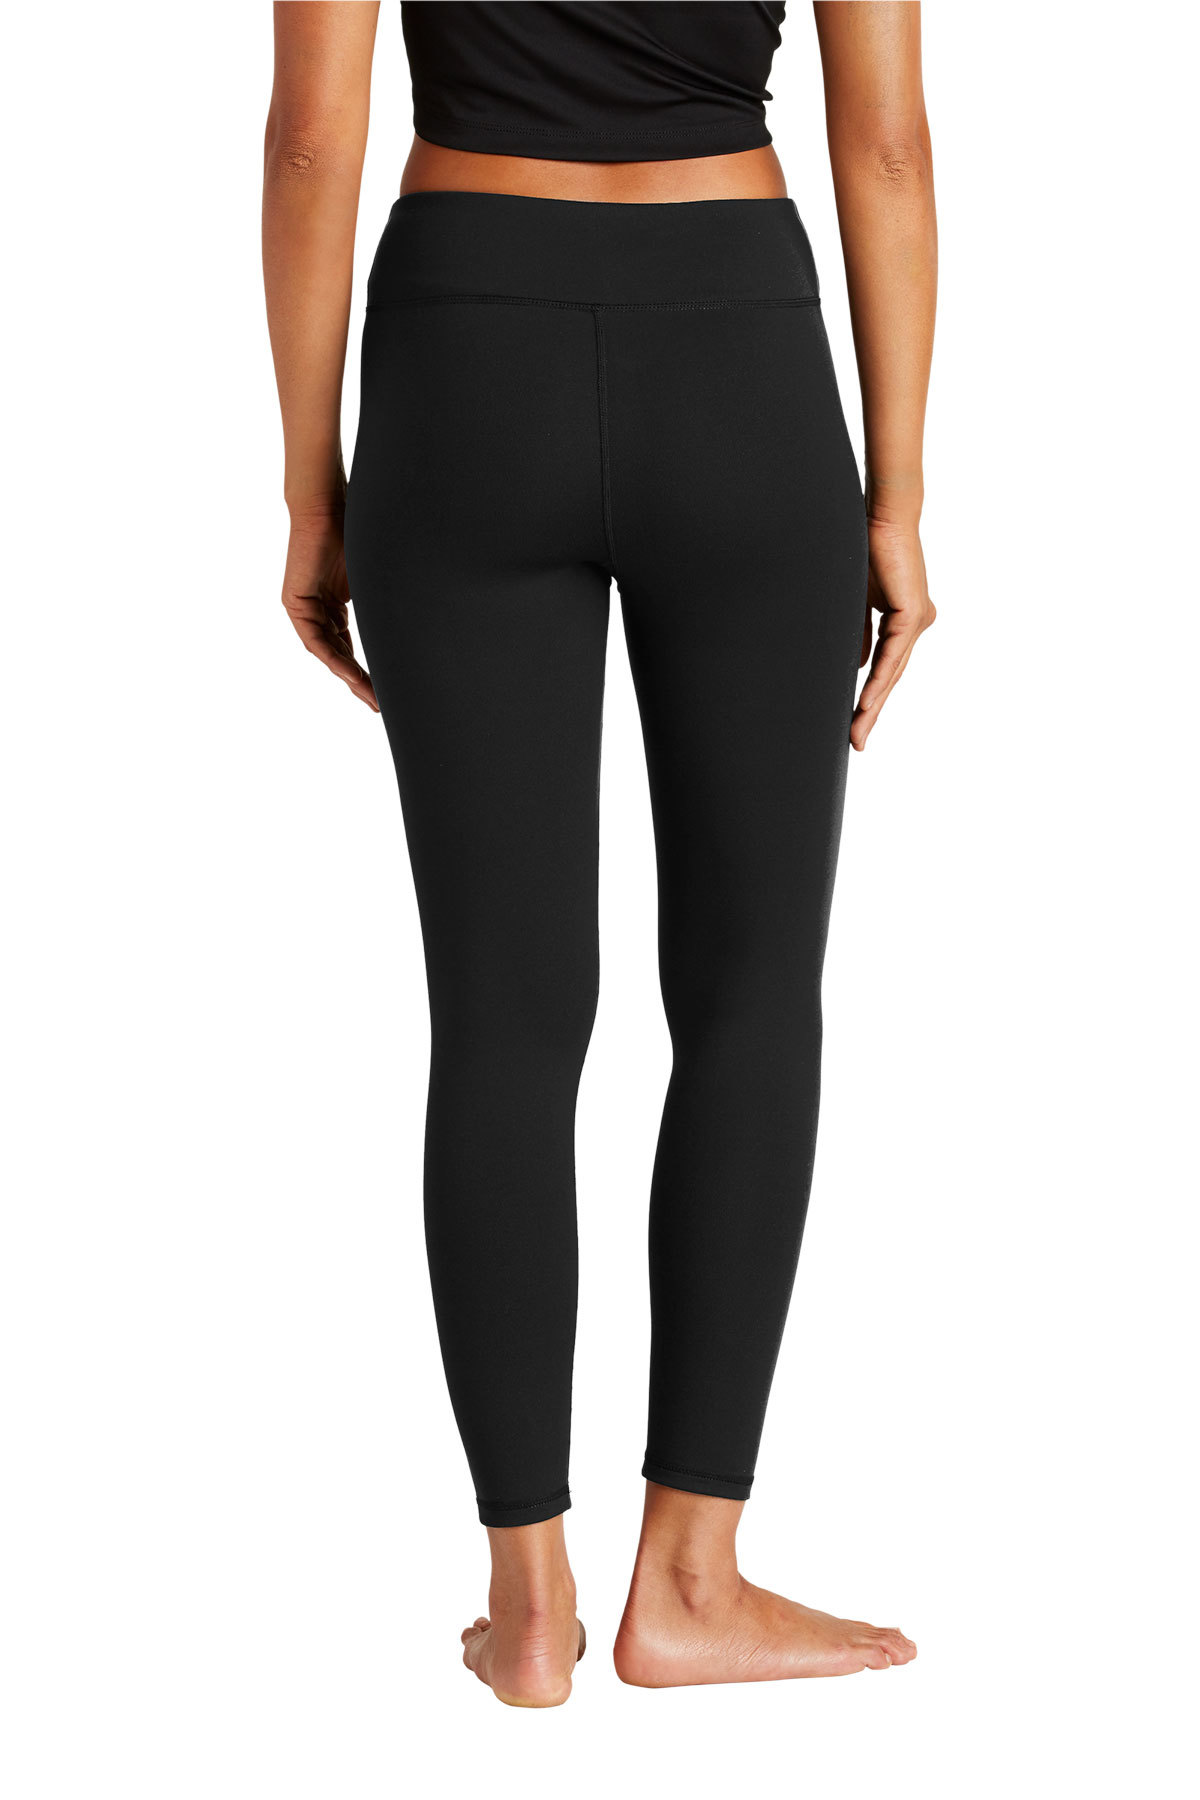 Sport Tek Ladies 7 8 Legging Activewear Sanmar Select the department you want to search in. sport tek ladies 7 8 legging activewear sanmar